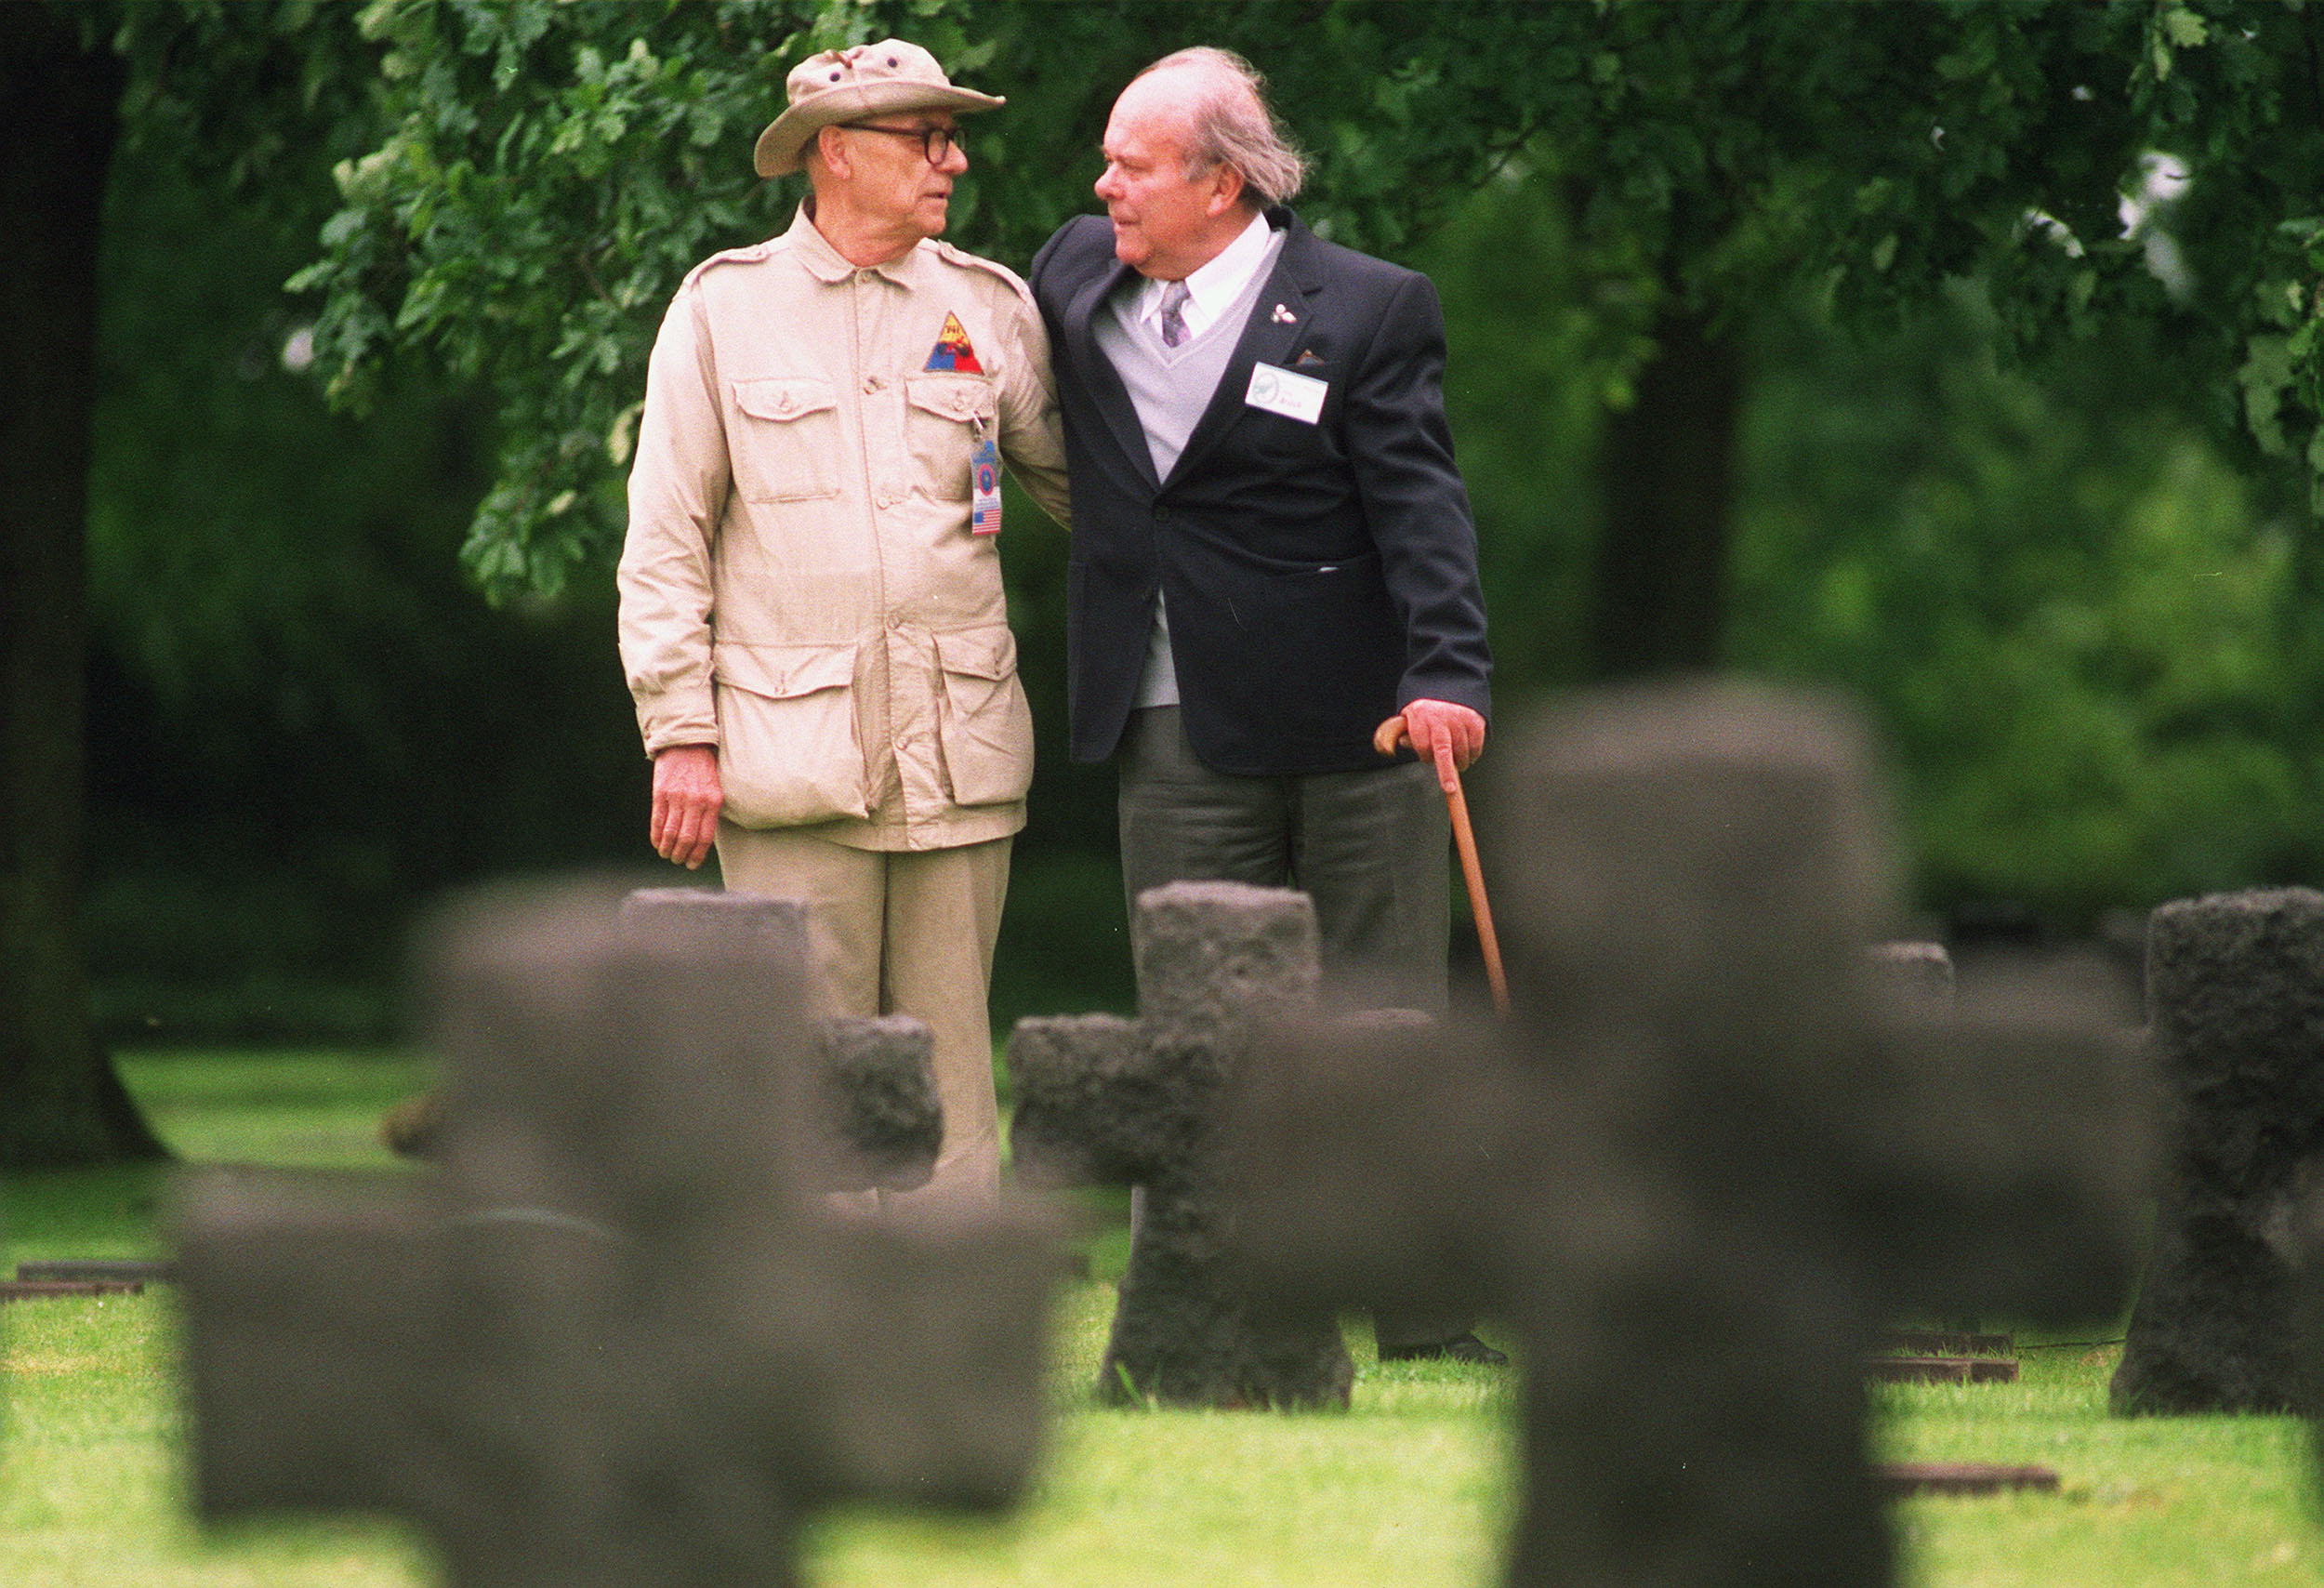 LA CAMBE, FRANCE: German veteran Peter Brack (R) from Cologne and US veteran Jack Boardman from Chicago chat in the German cemetery of La Cambe 04 June 1994 during a meeting between veterans of both countries. (Photo by JOEL SAGET/AFP/Getty Images)